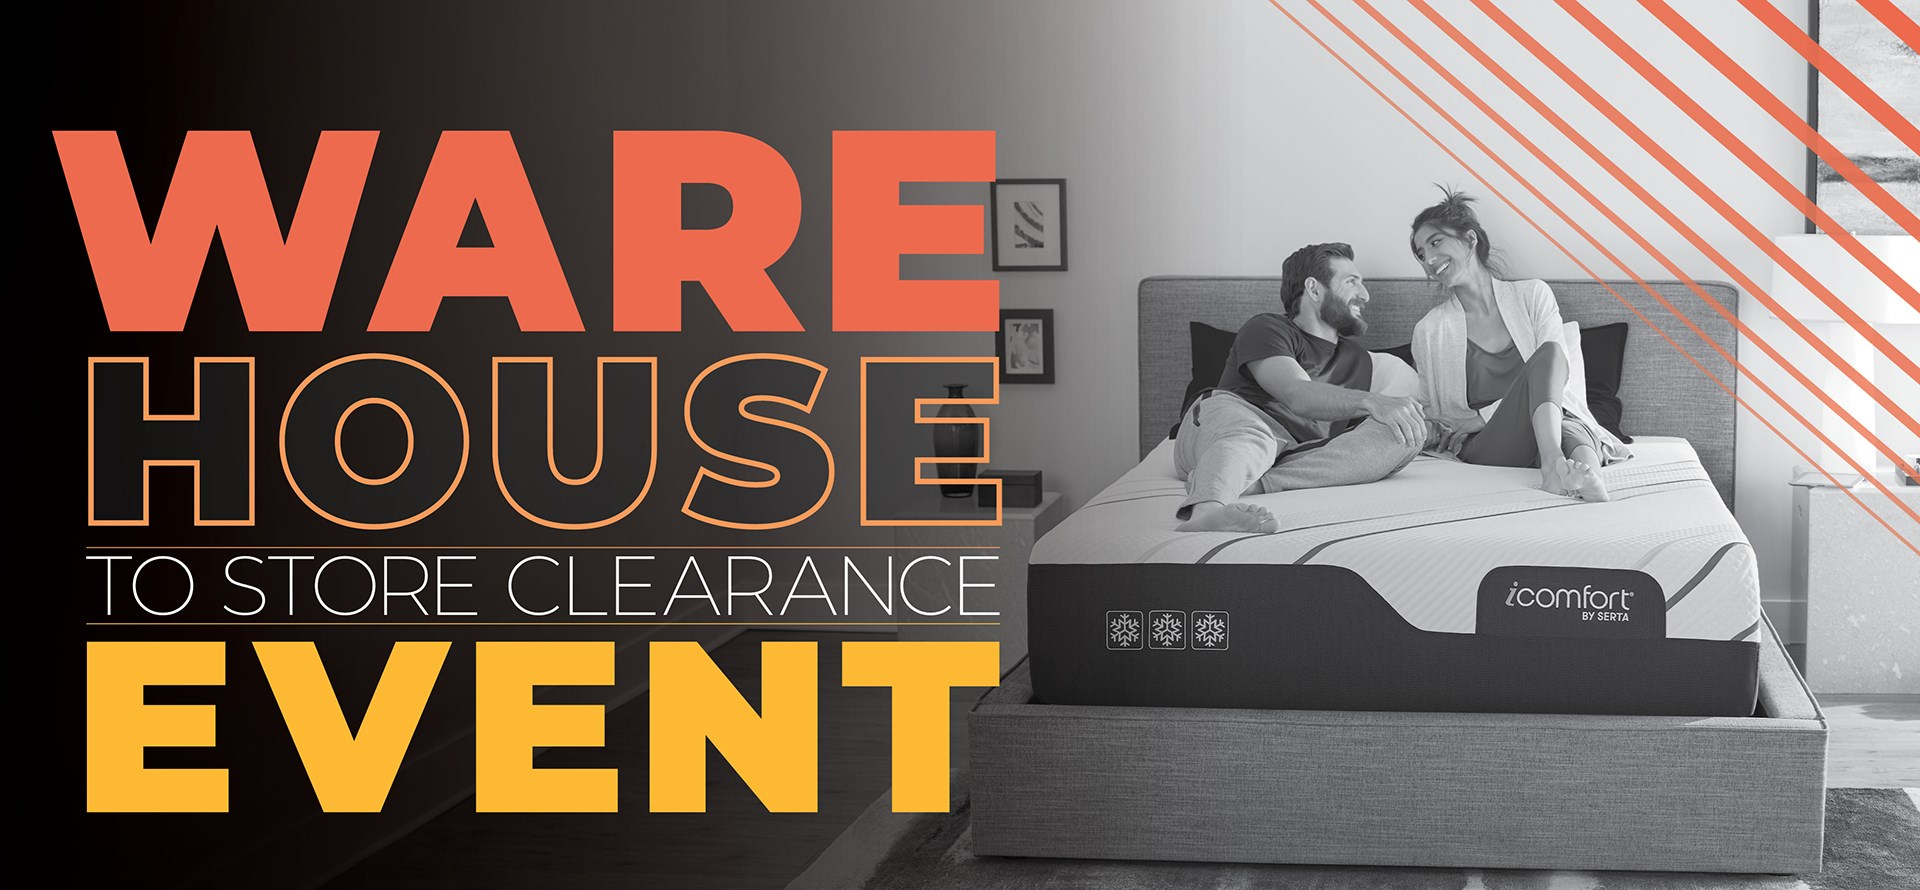 Furniture & ApplianceMart Warehouse to Store Clearance Event